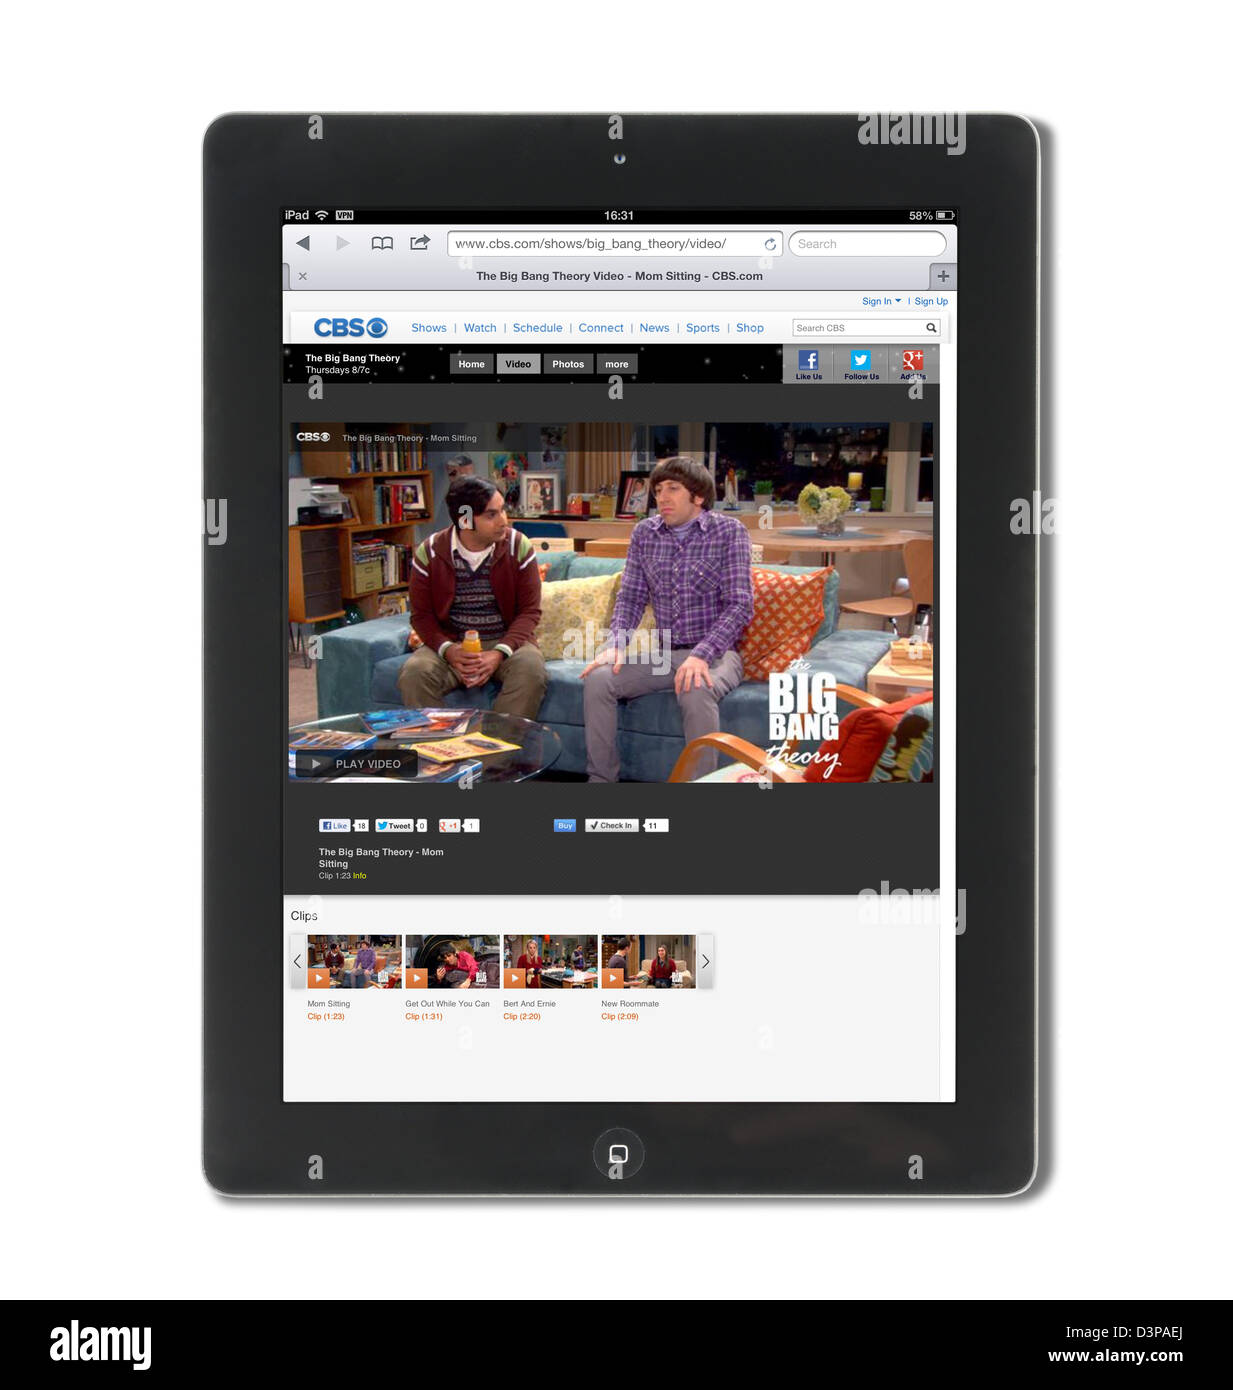 Watching a clip from the hit comedy The Big Bang Theory on the CBS website via an iPad tablet, USA - Stock Image